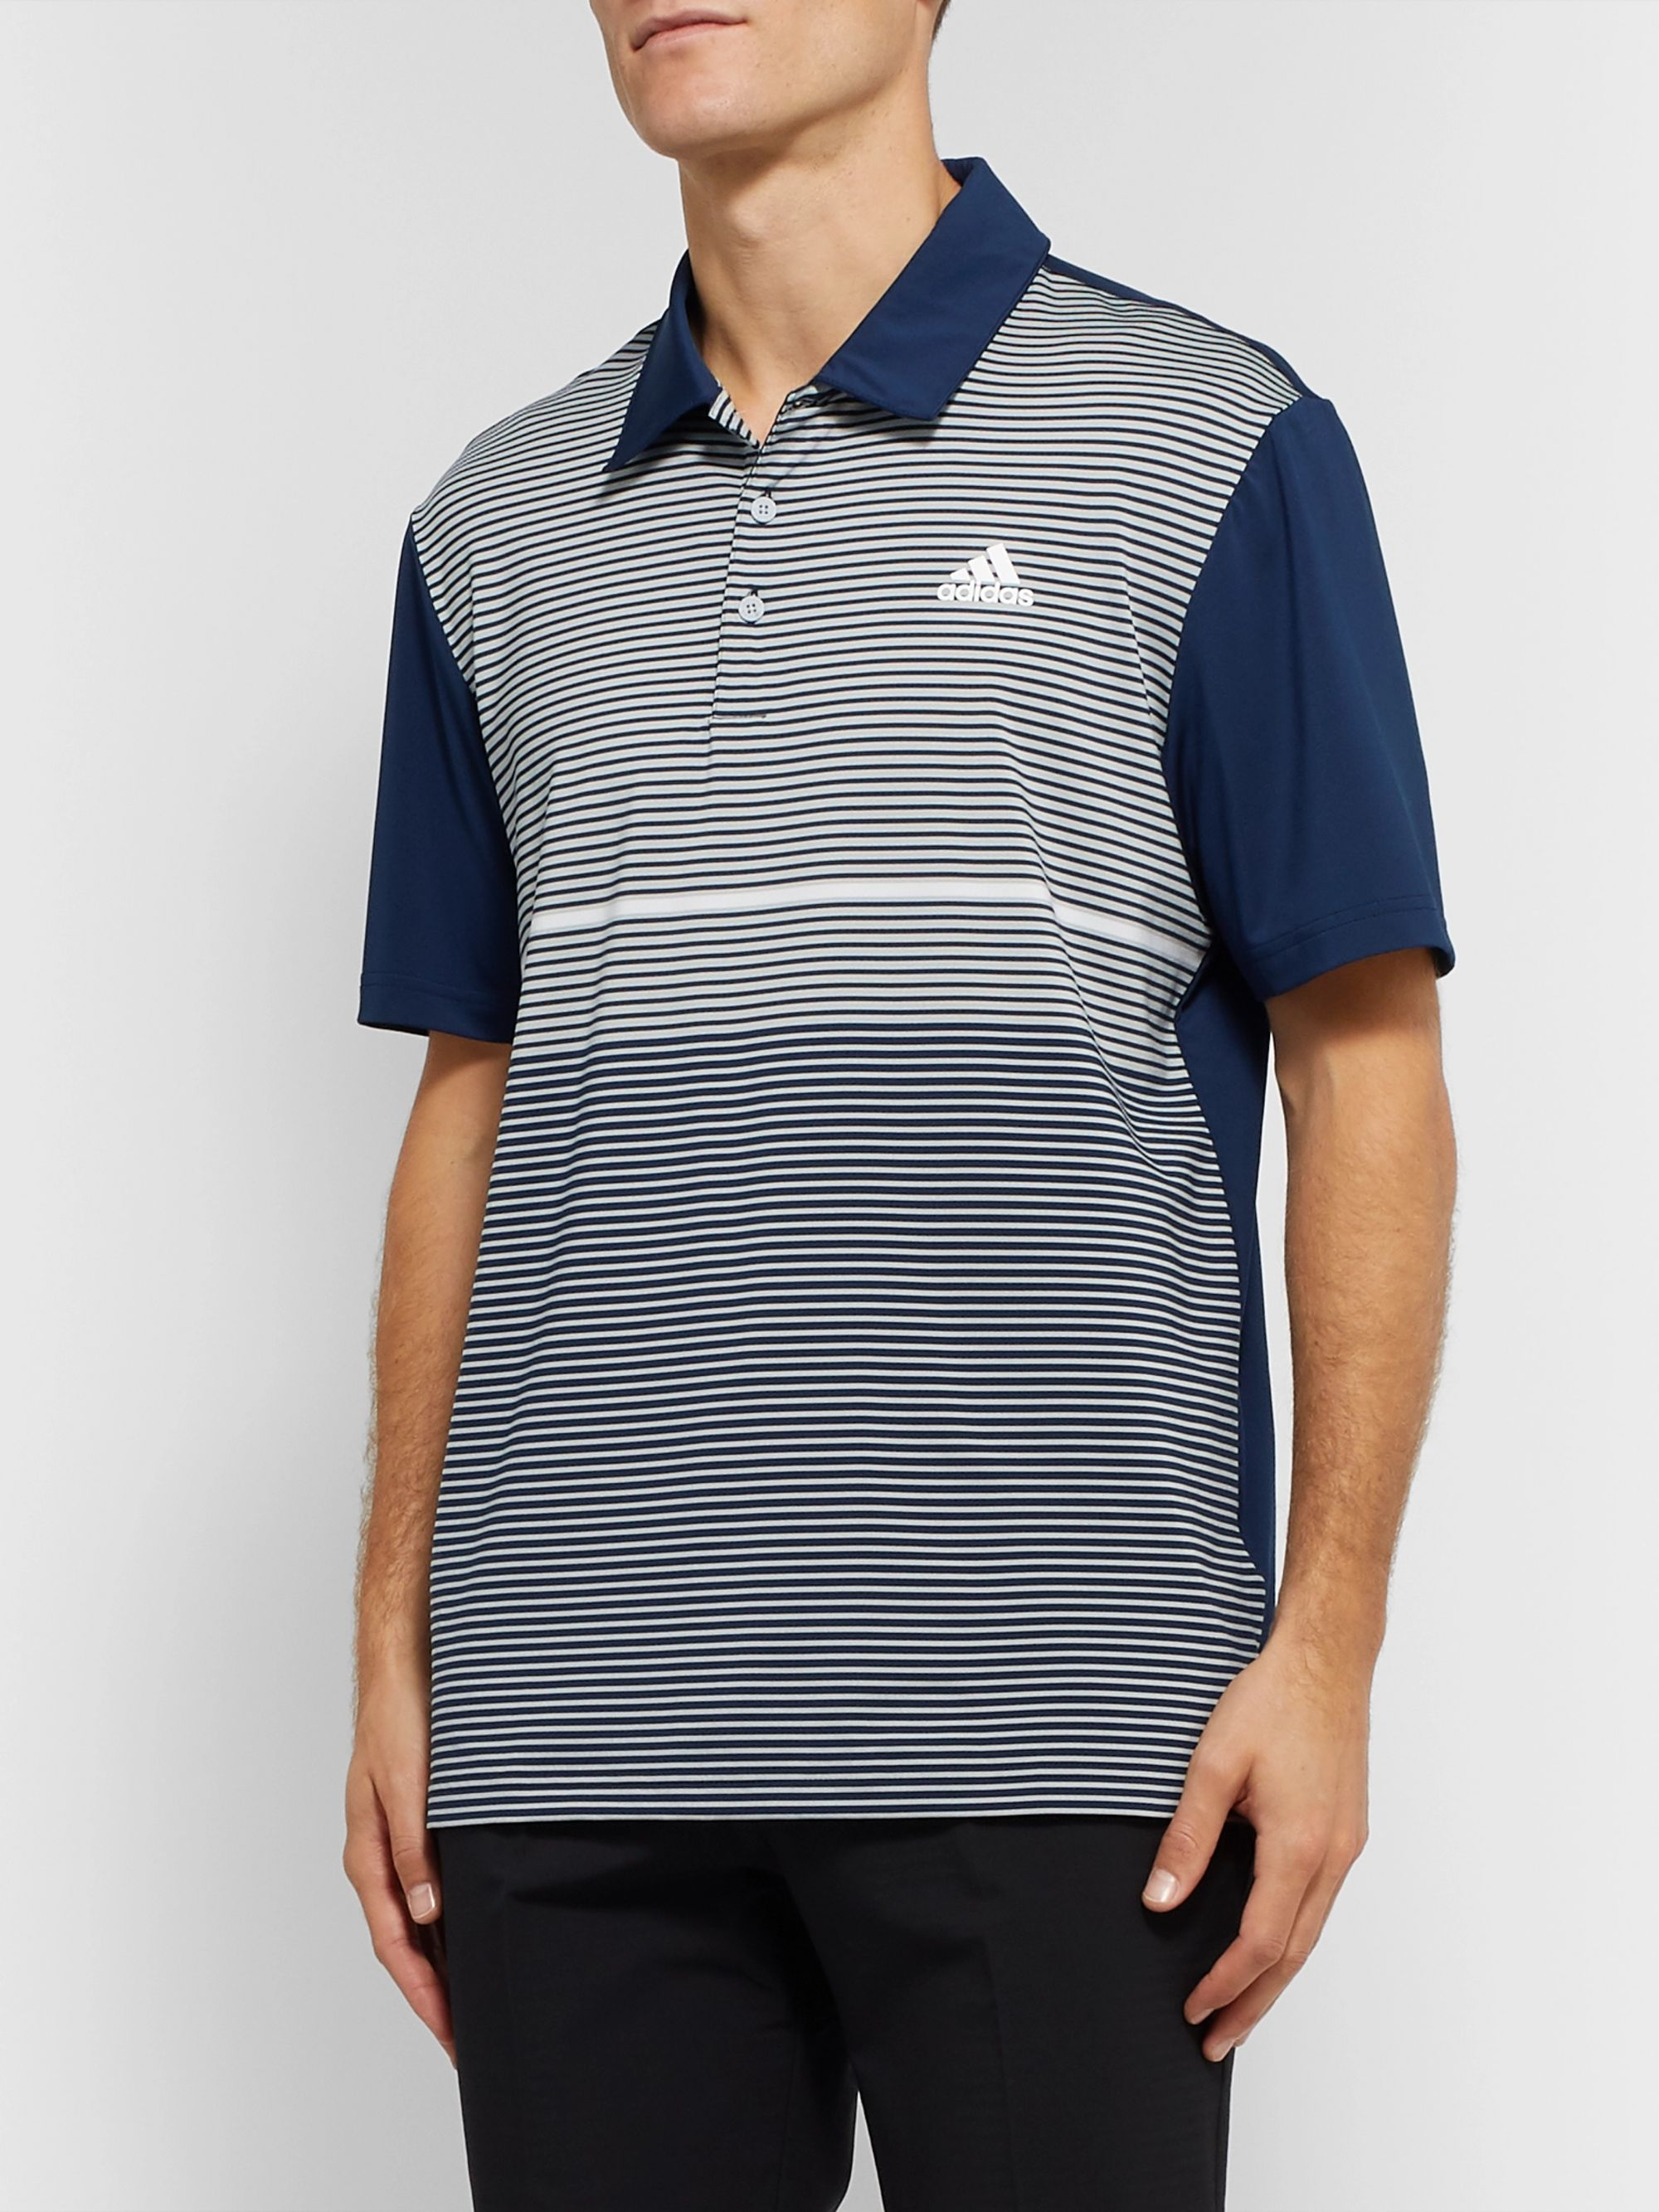 Adidas Golf Ultimate365 Stretch-Jersey Golf Polo Shirt